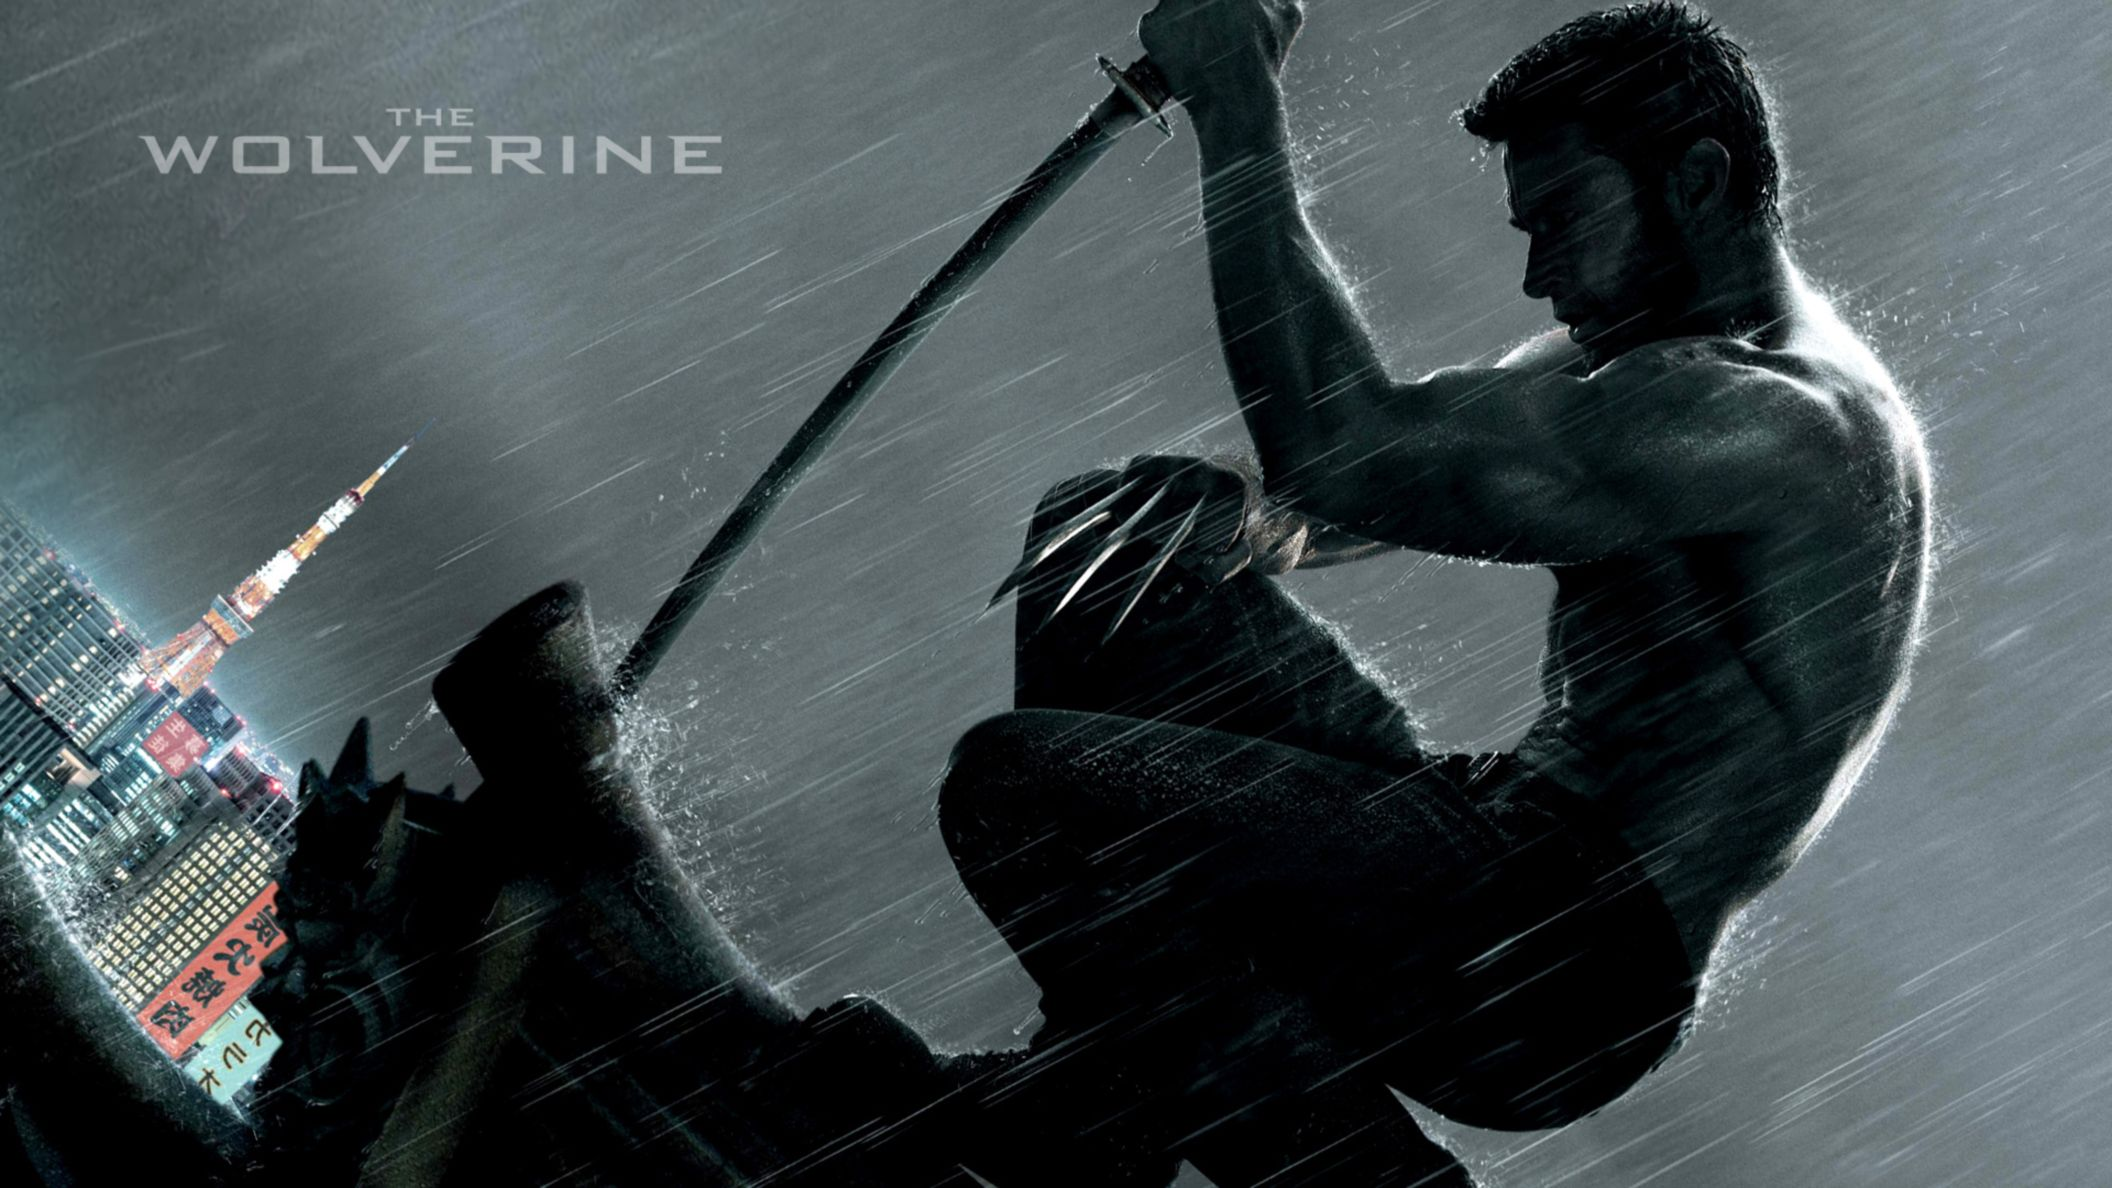 Download free HD The Wolverine HD Wallpaper, image